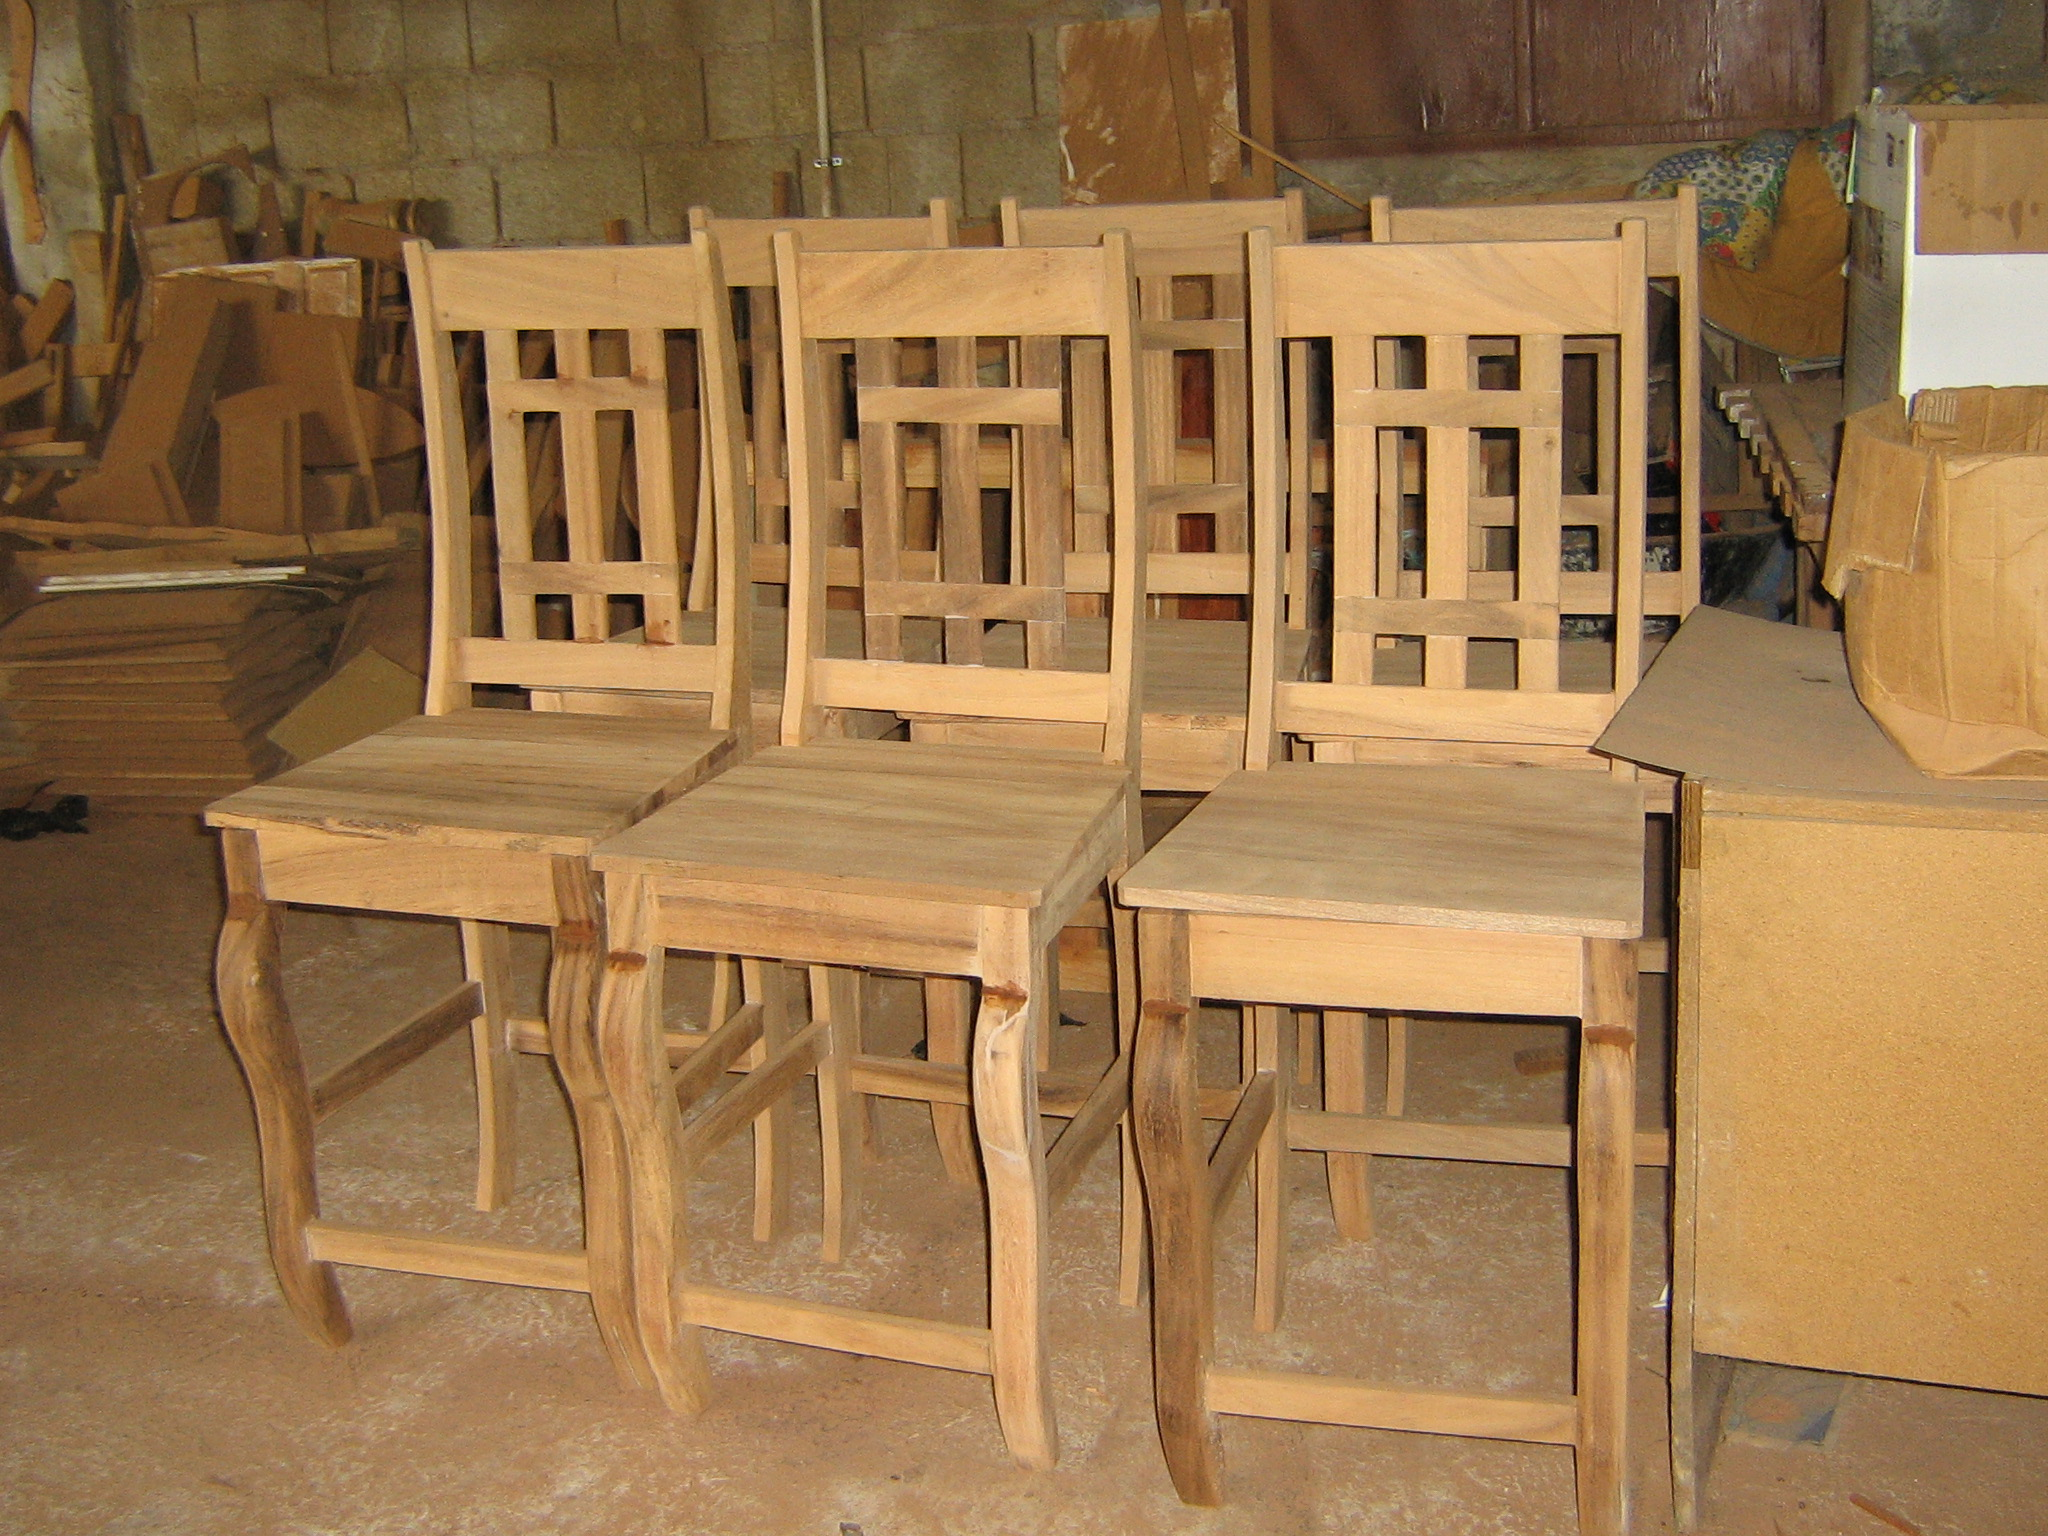 project-of-hope-chairs-img_0553